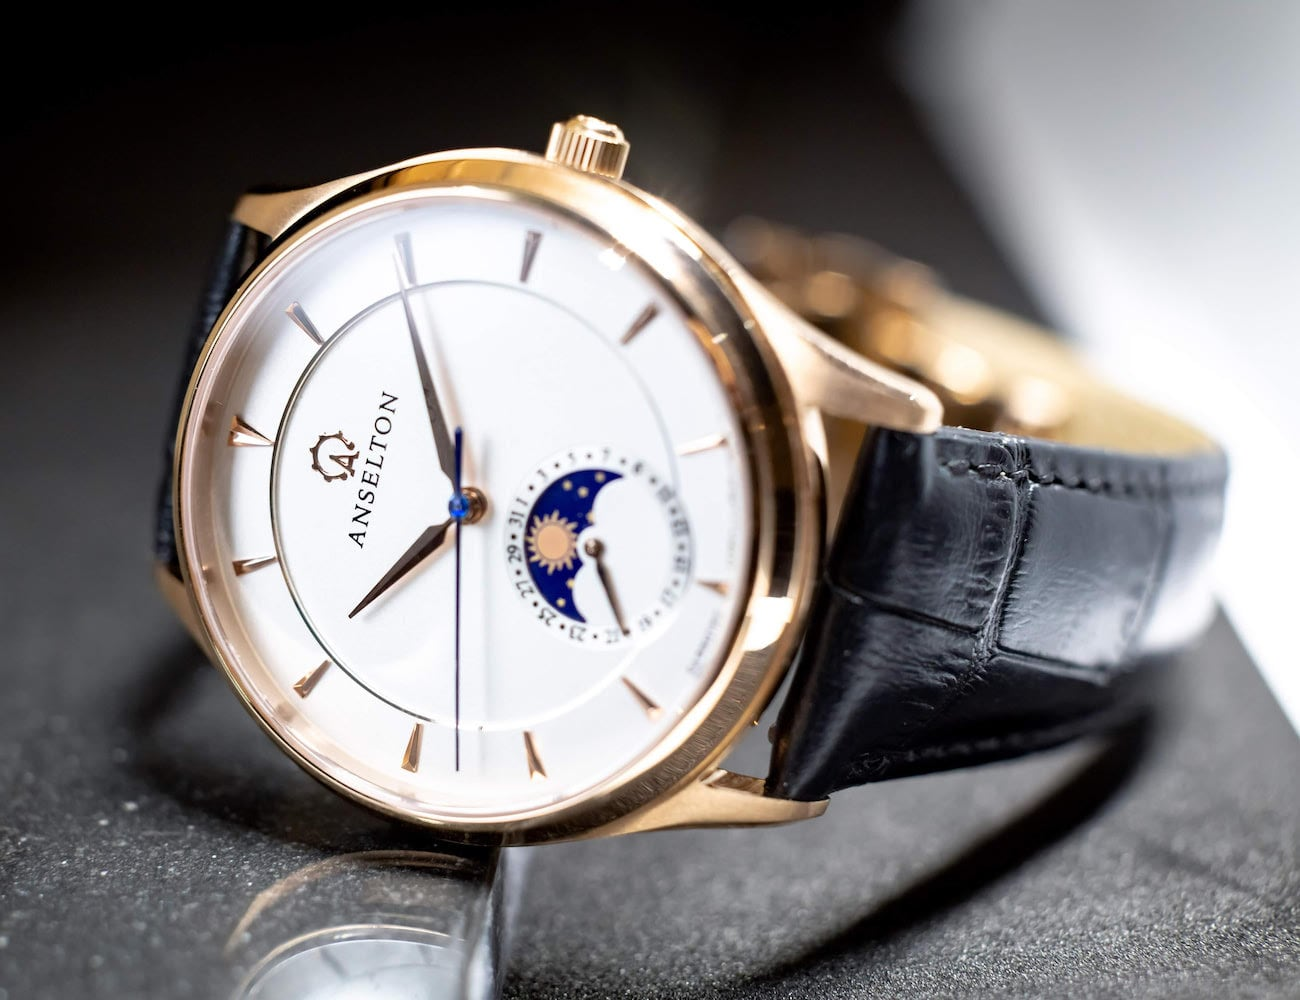 Anselton Sundate Luxury Design Watch is designed to bring out emotion